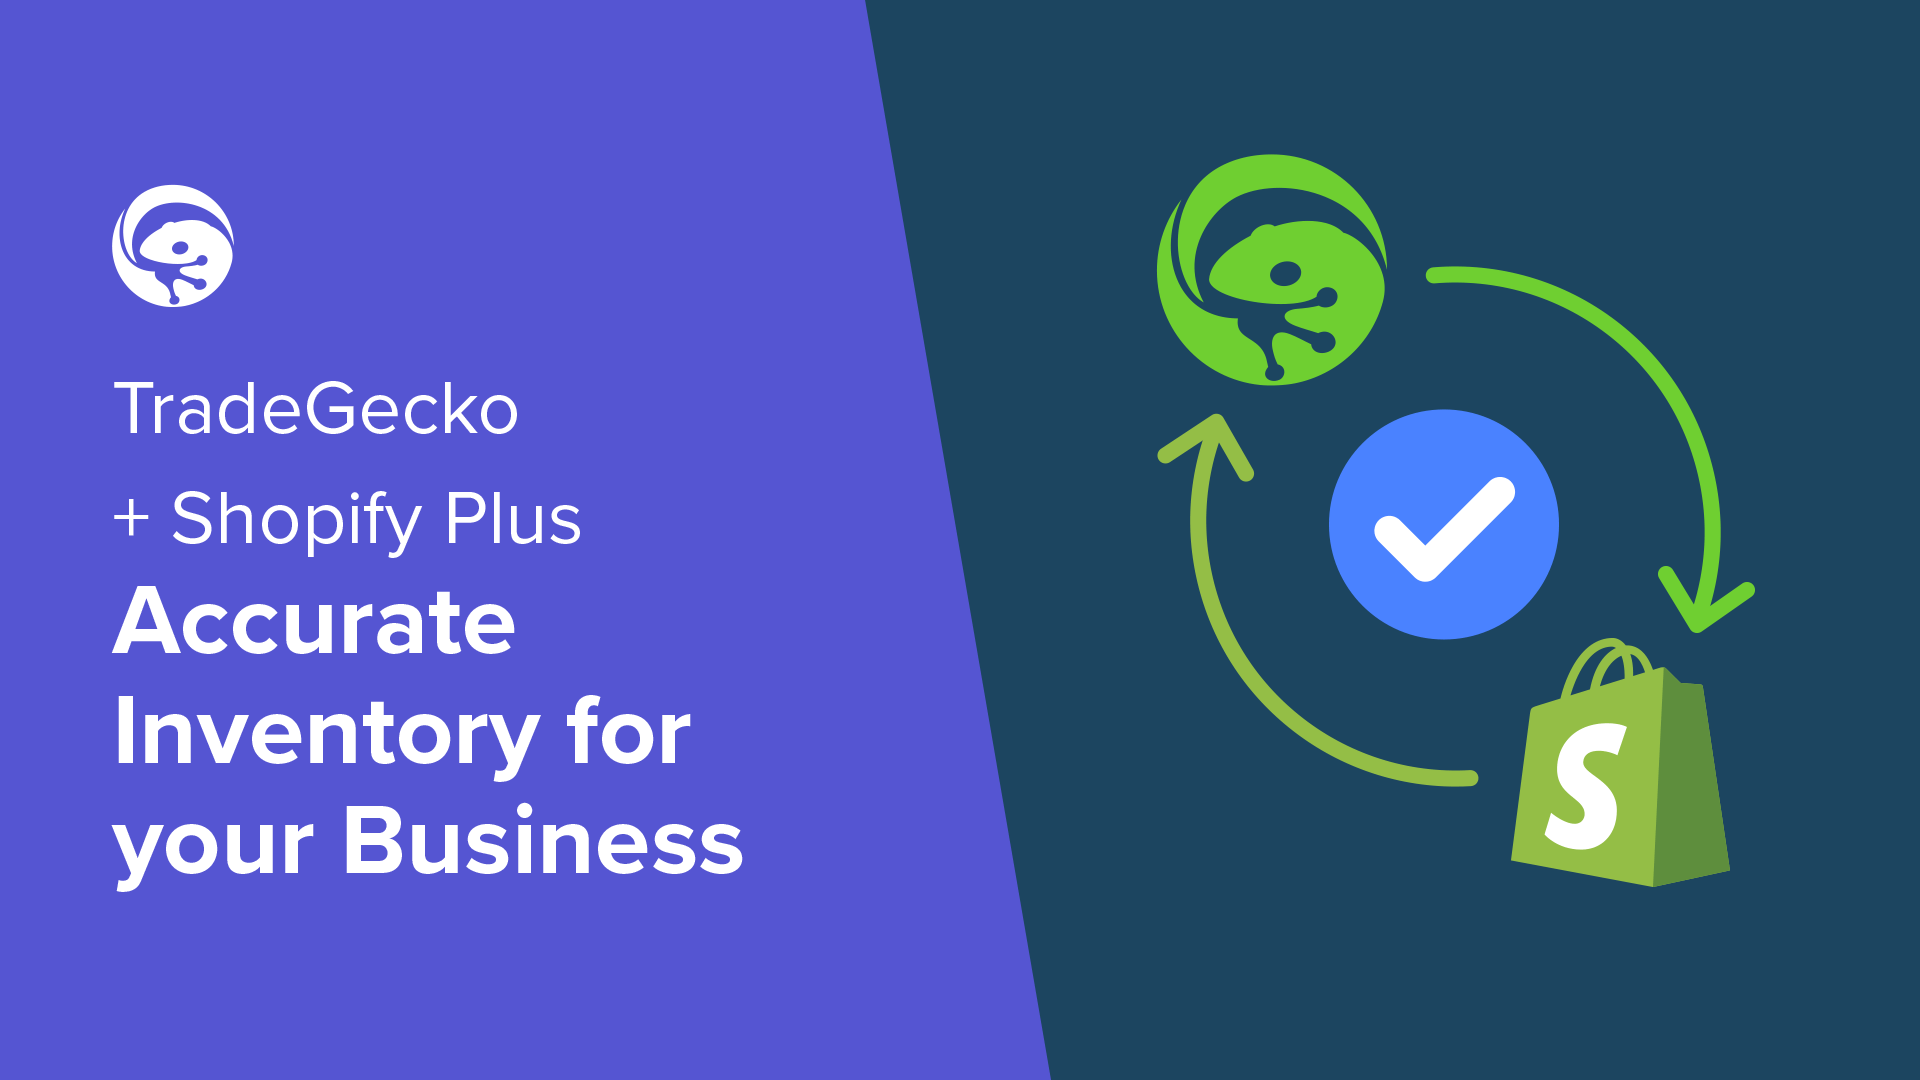 tradegecko-shopify-plus-video-thumbnail-2019